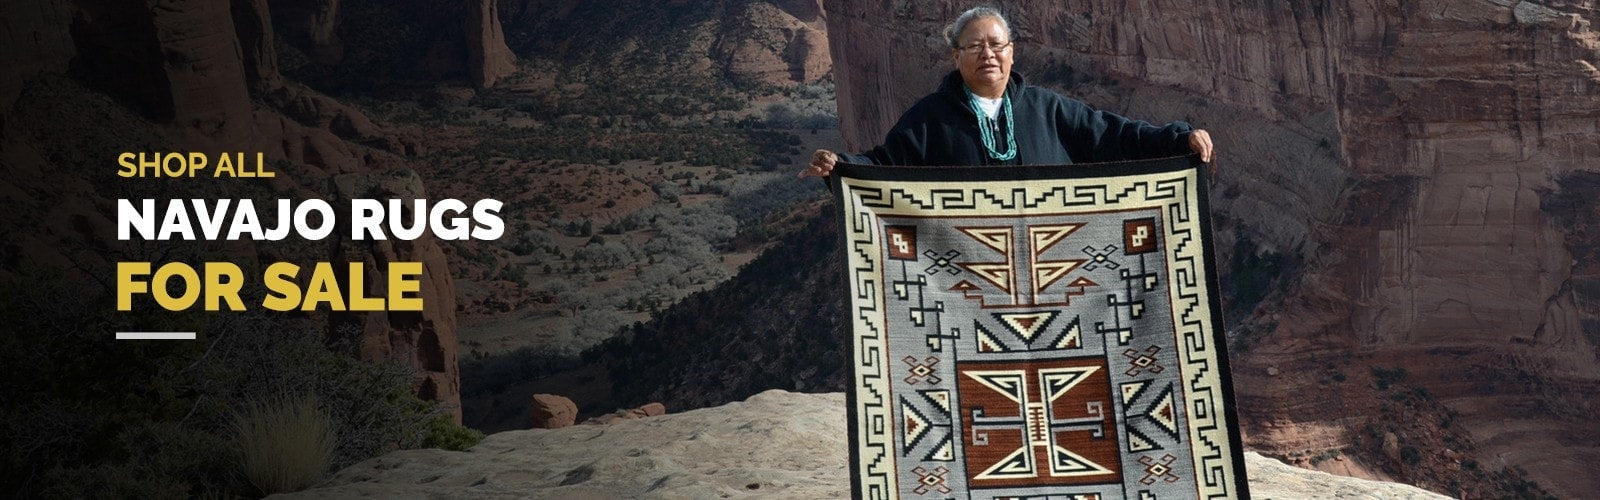 Handwoven Authentic Navajo Rugs for Sale